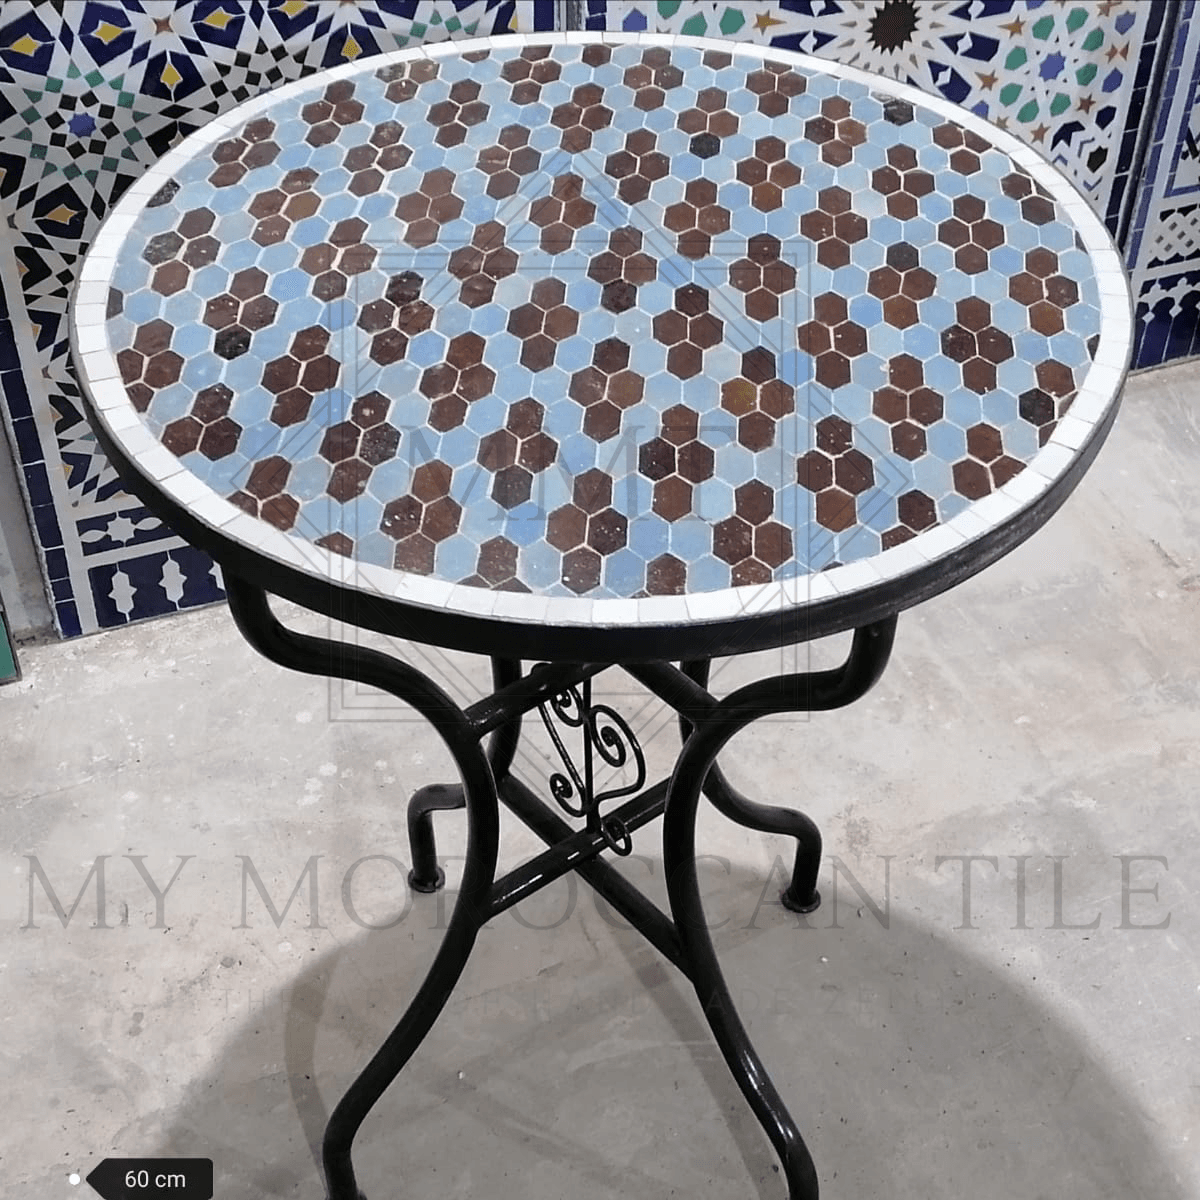 Handmade Moroccan Mosaic Table 2106-02